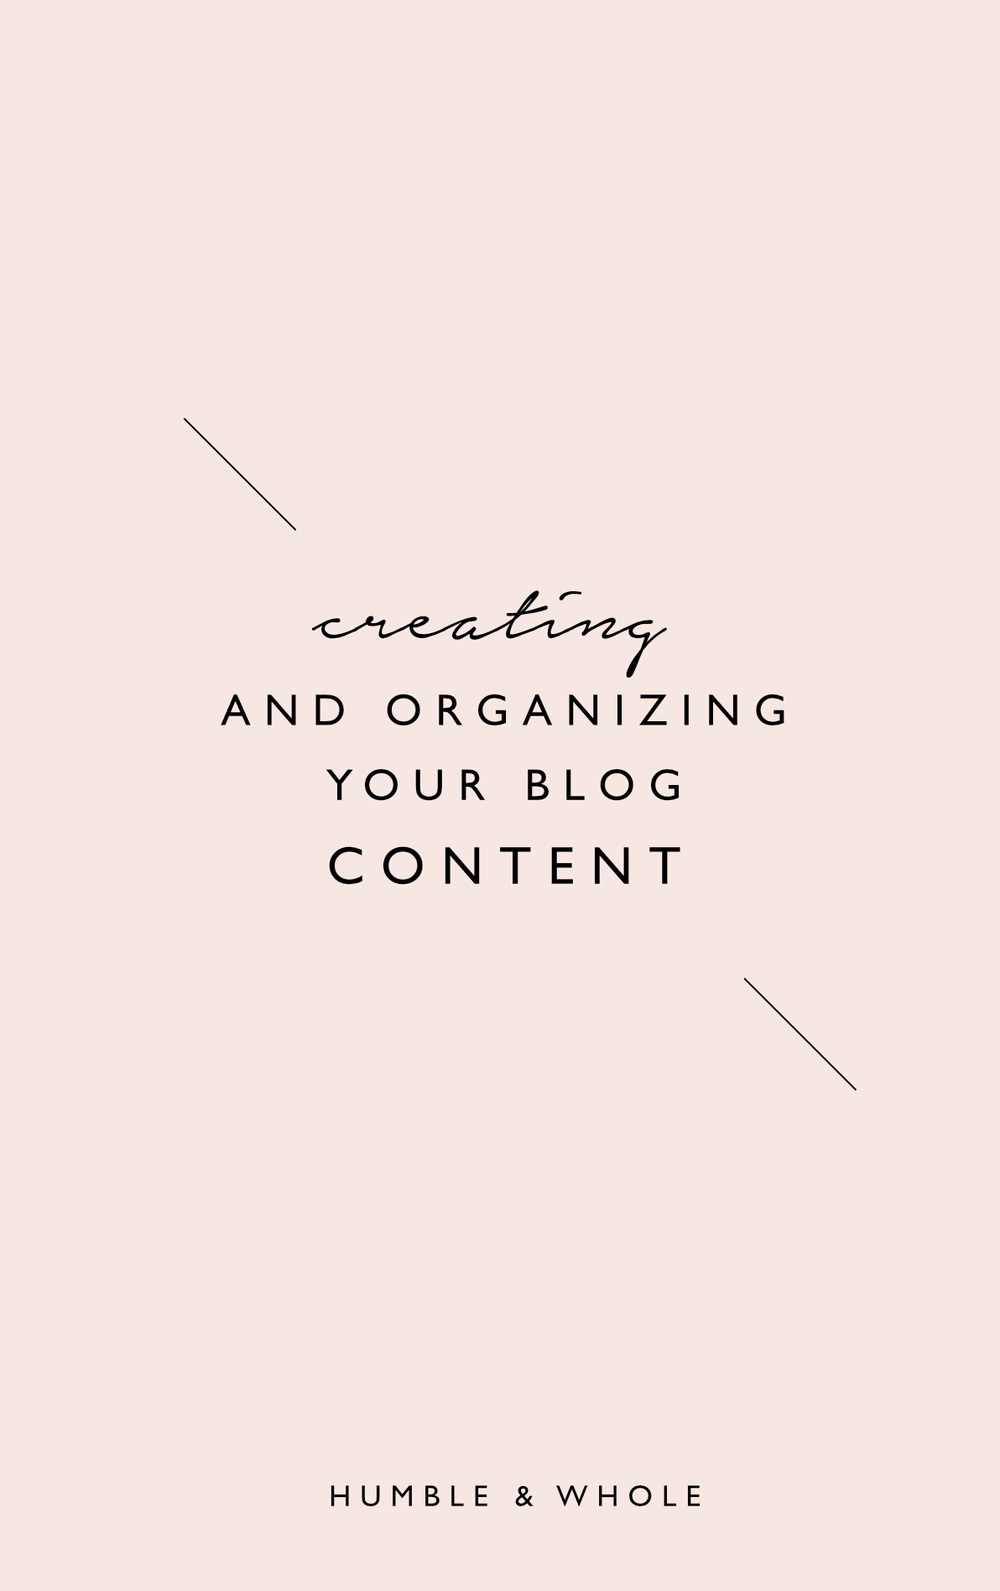 Ready to start blogging but unsure of how to develop the categories you need? Click through to discover the best ways to decide on categories for your blog and brainstorm content ideas!